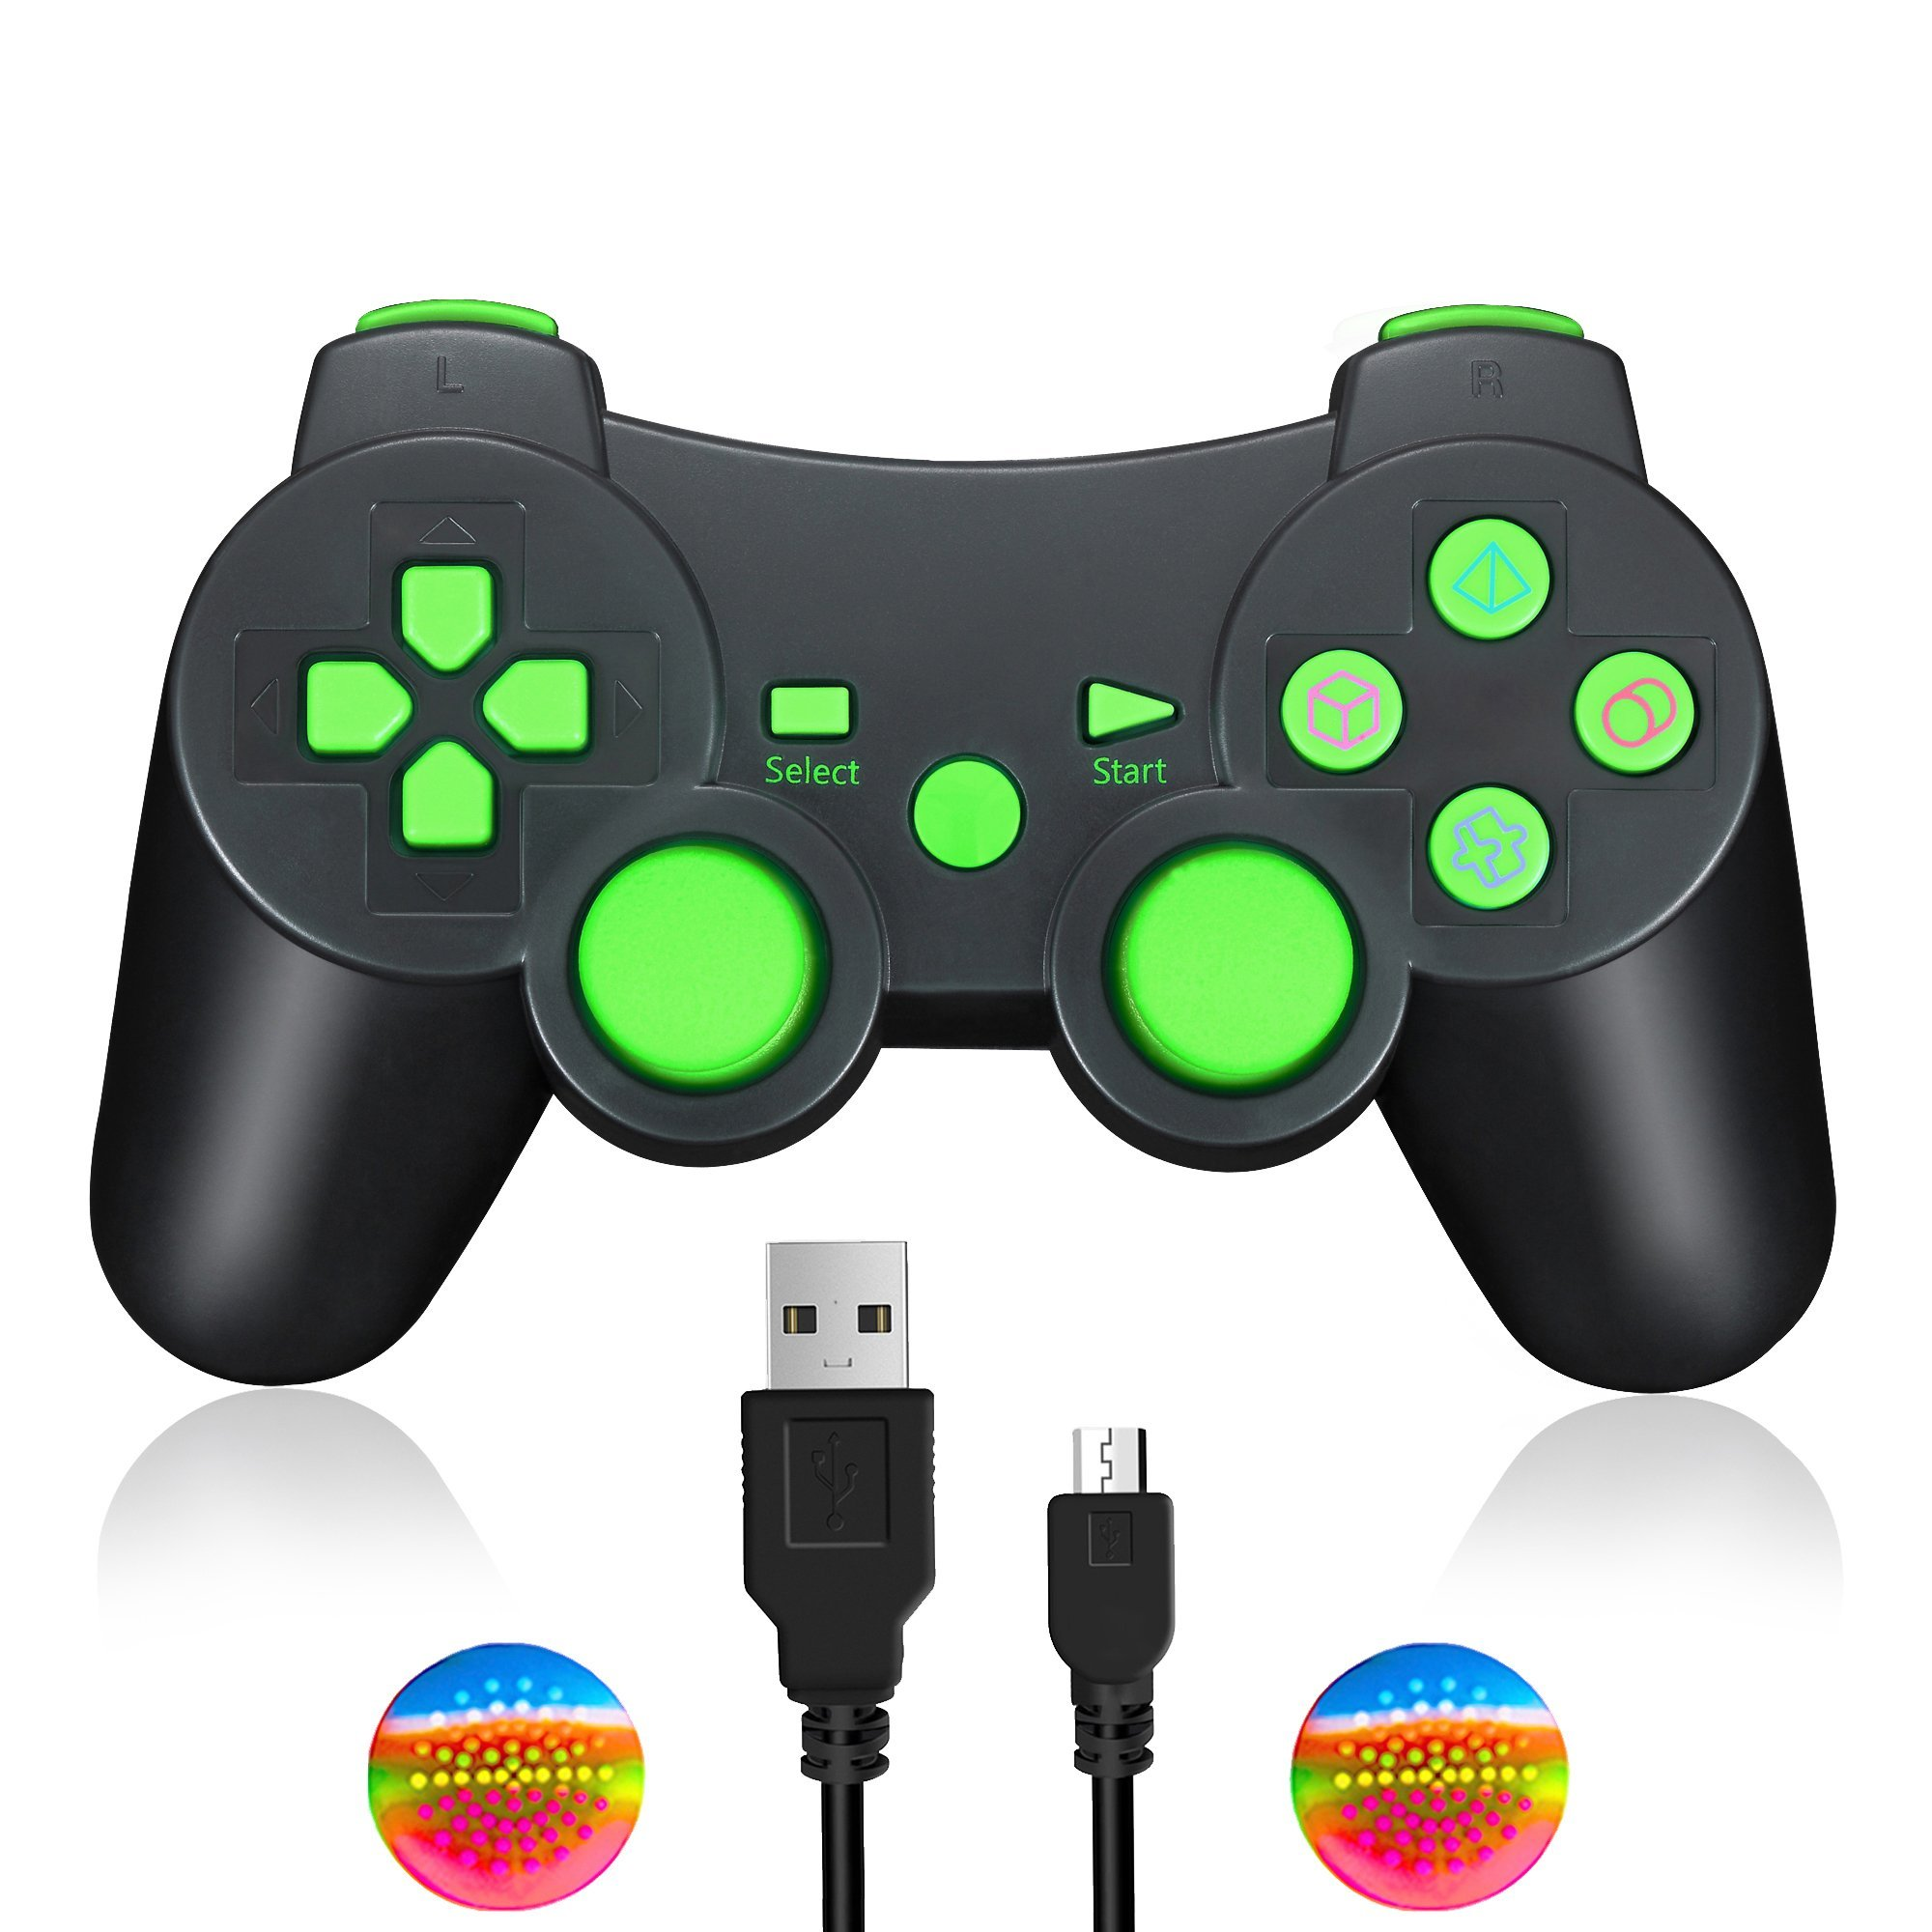 TPFOON Wireless Controller Gamepad with Charging Cable Compatible with Sony PS3, Bluetooth Dualshock Joystick Sixaxis Remote Work with Sony Playstation 3 PS3